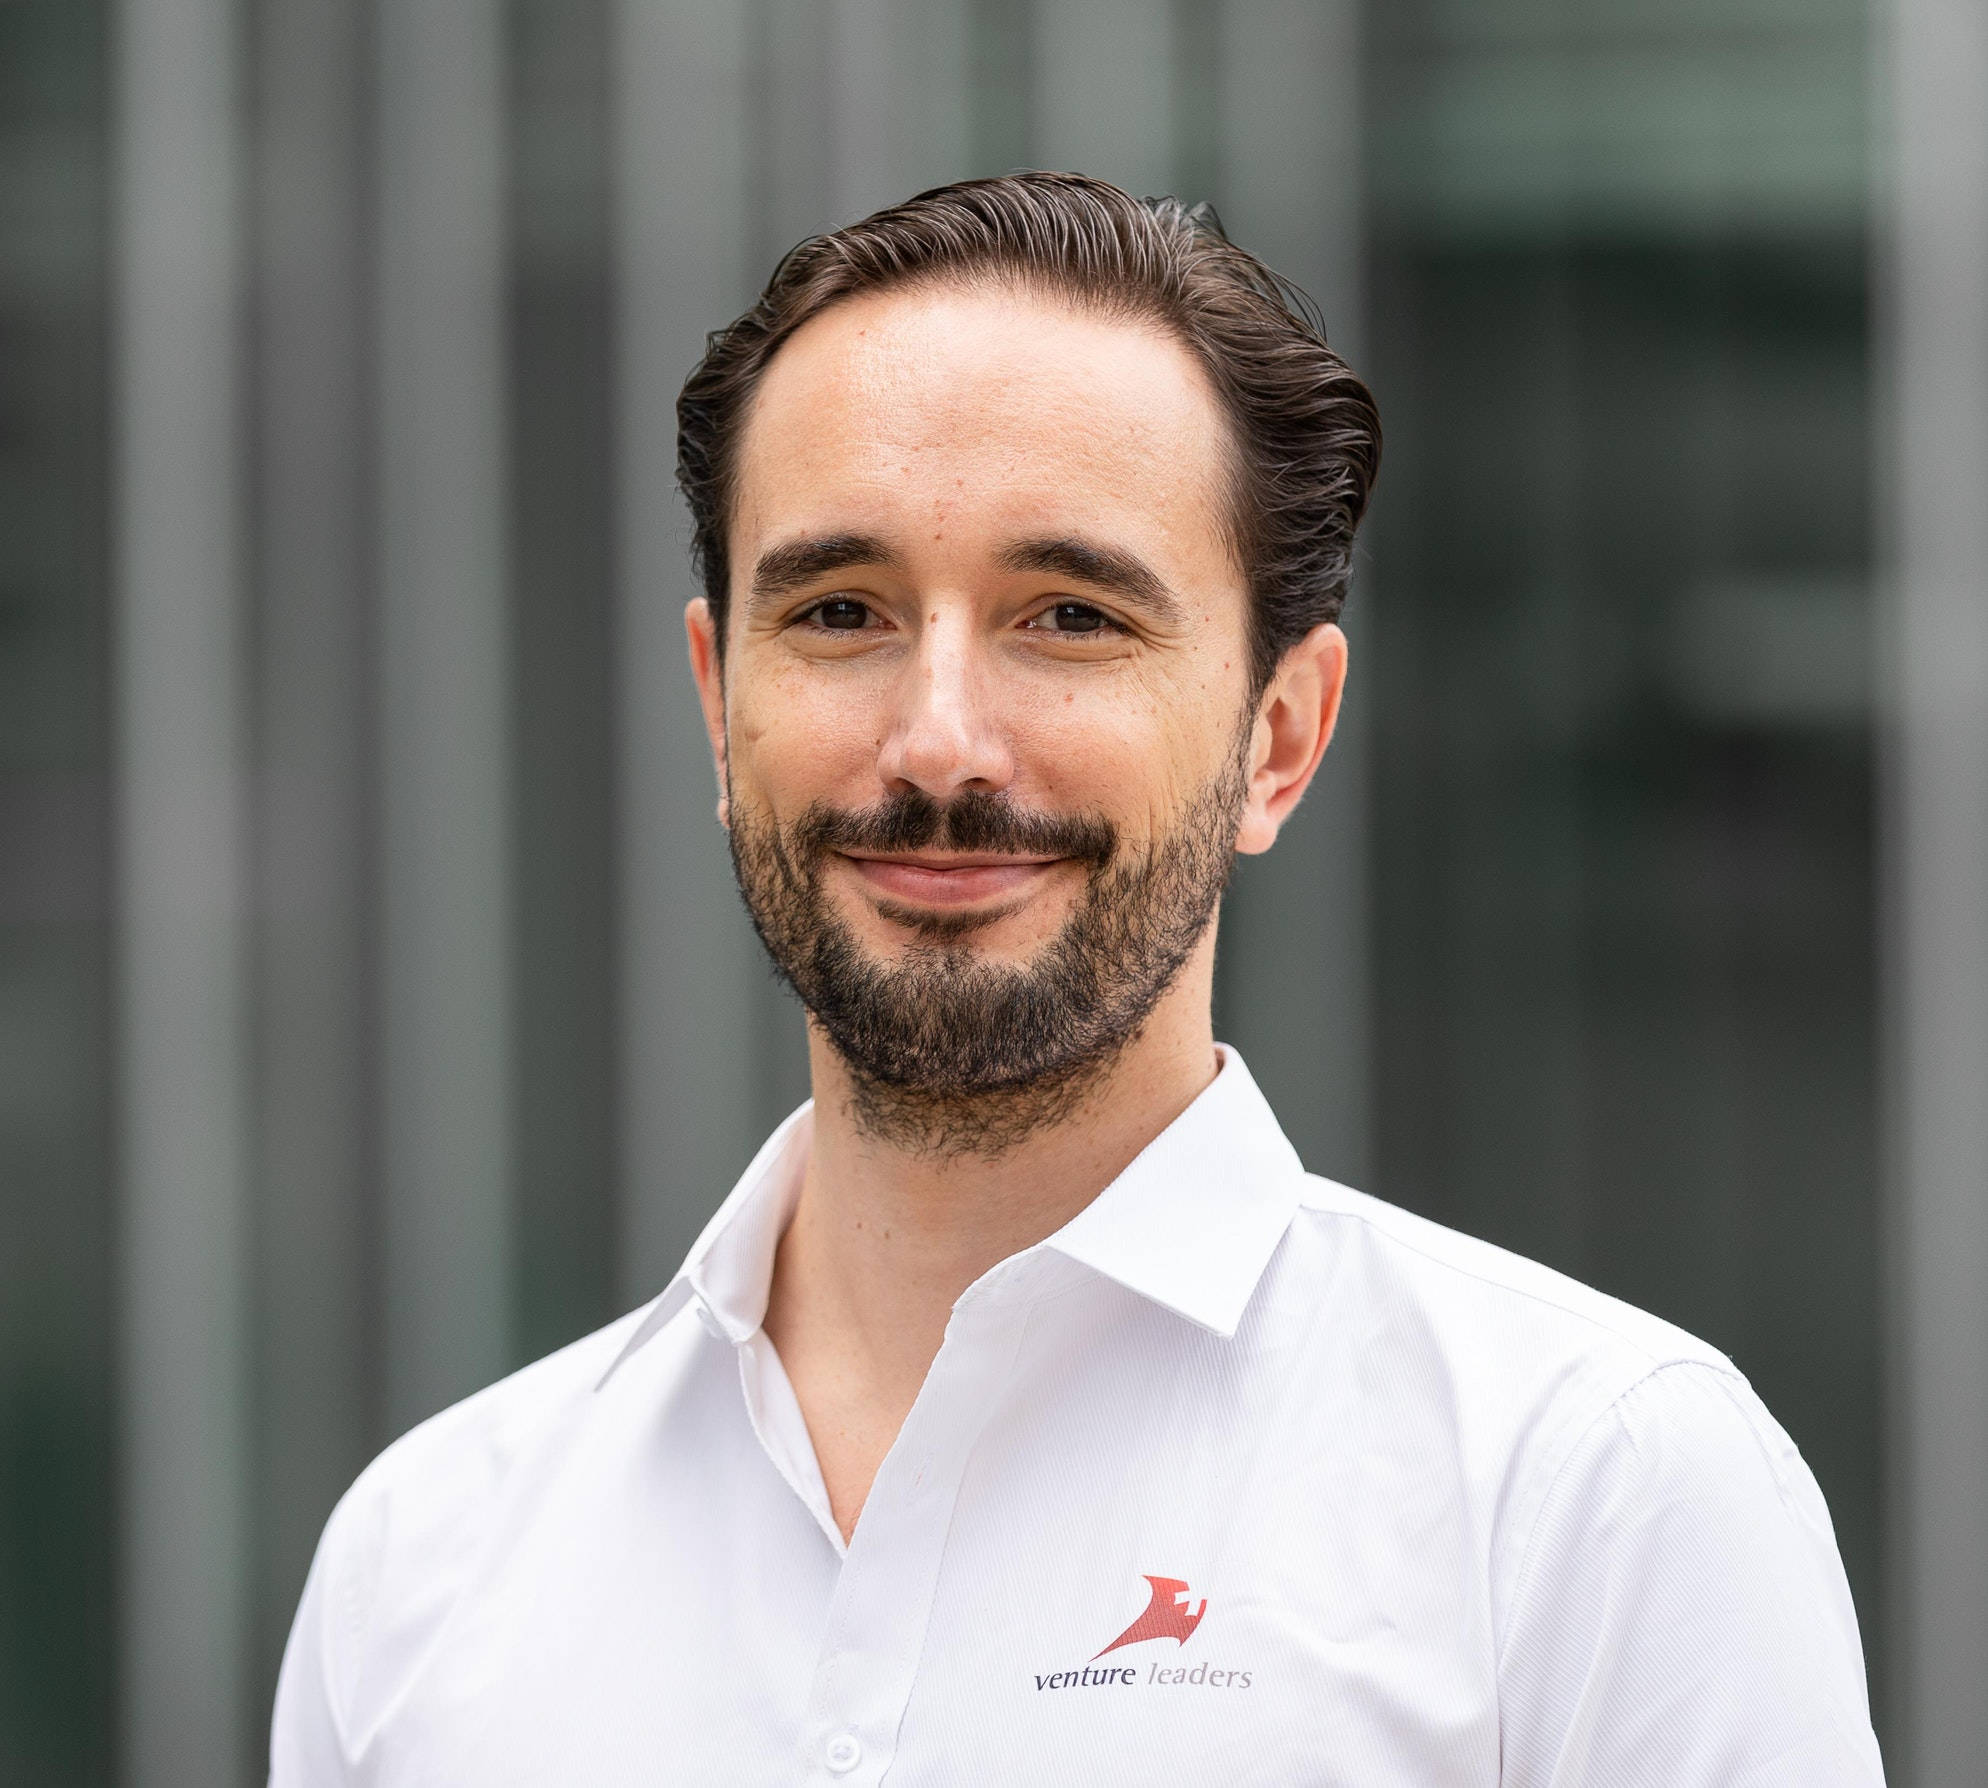 Meet Wecan Tokenize Chairman Mathieu Saint-Cyr and discover why gym and juice are critical to his entrepreneurial success